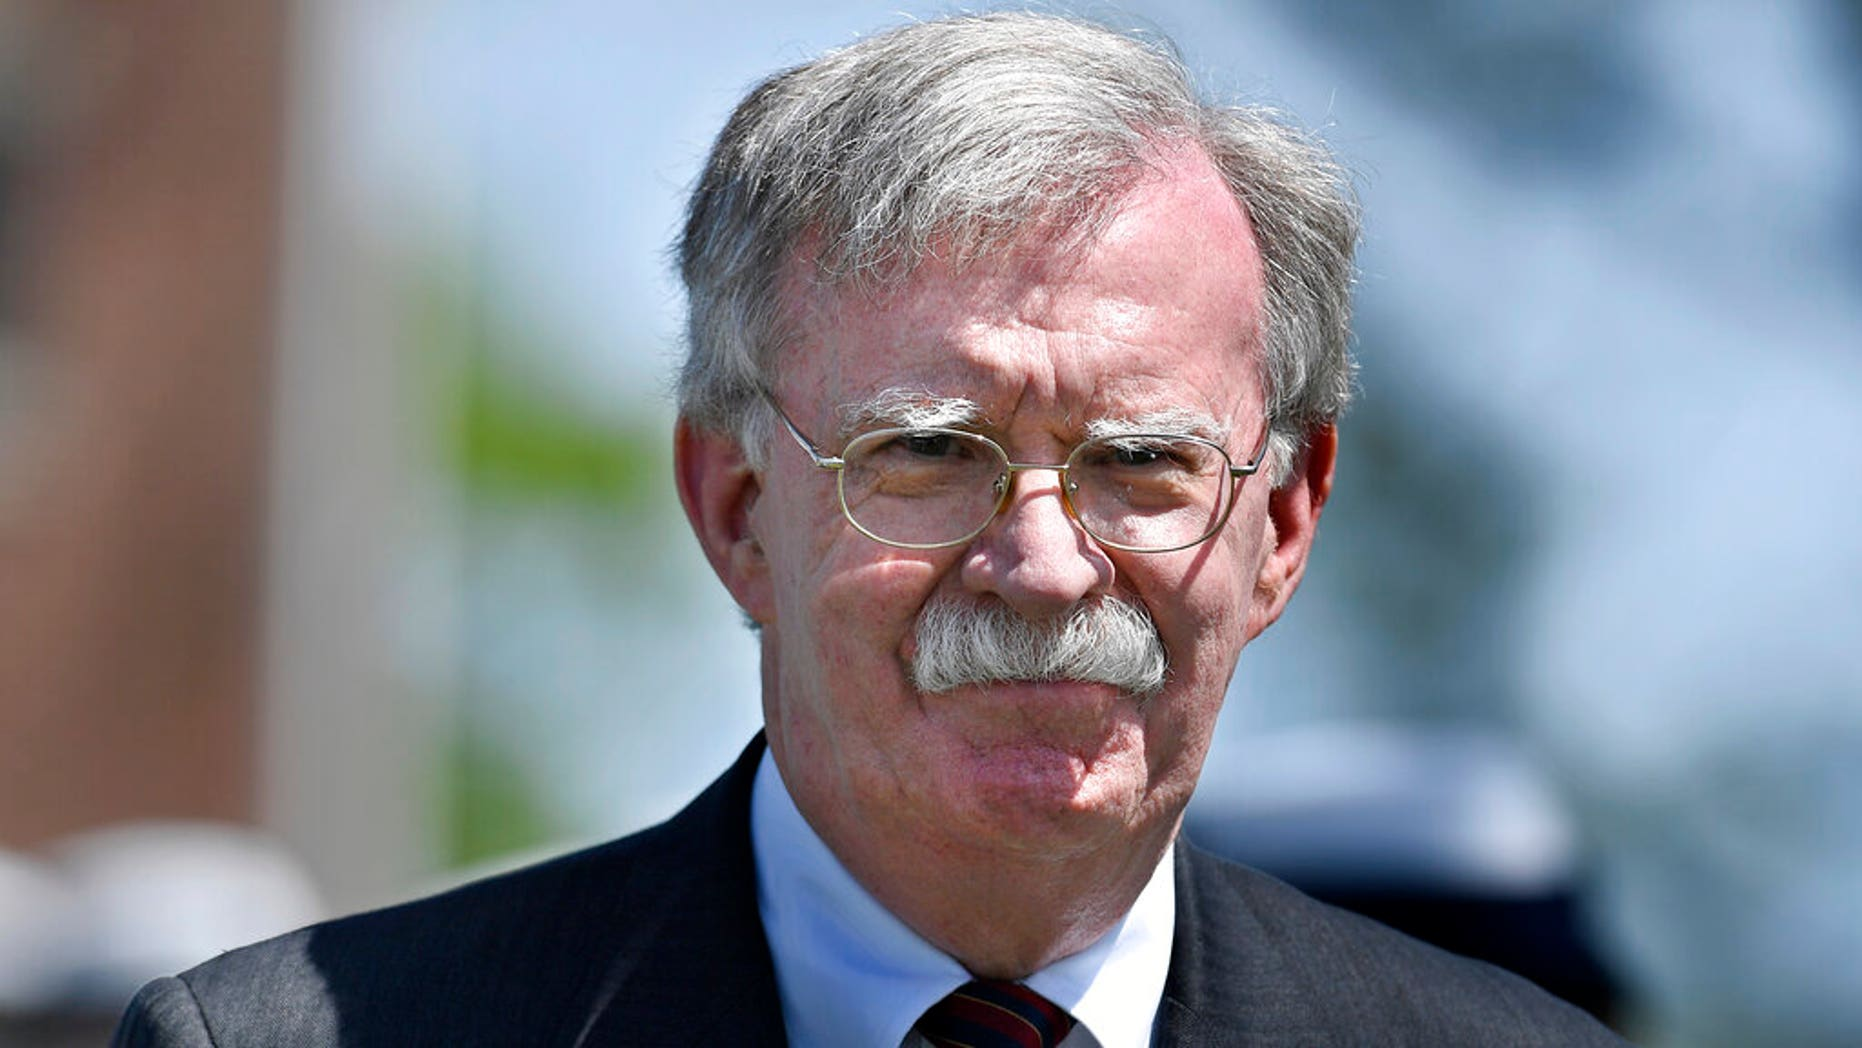 FILE: National Security Adviser John Bolton arrives to speak at the commencement for the United States Coast Guard Academy in New London, Conn.